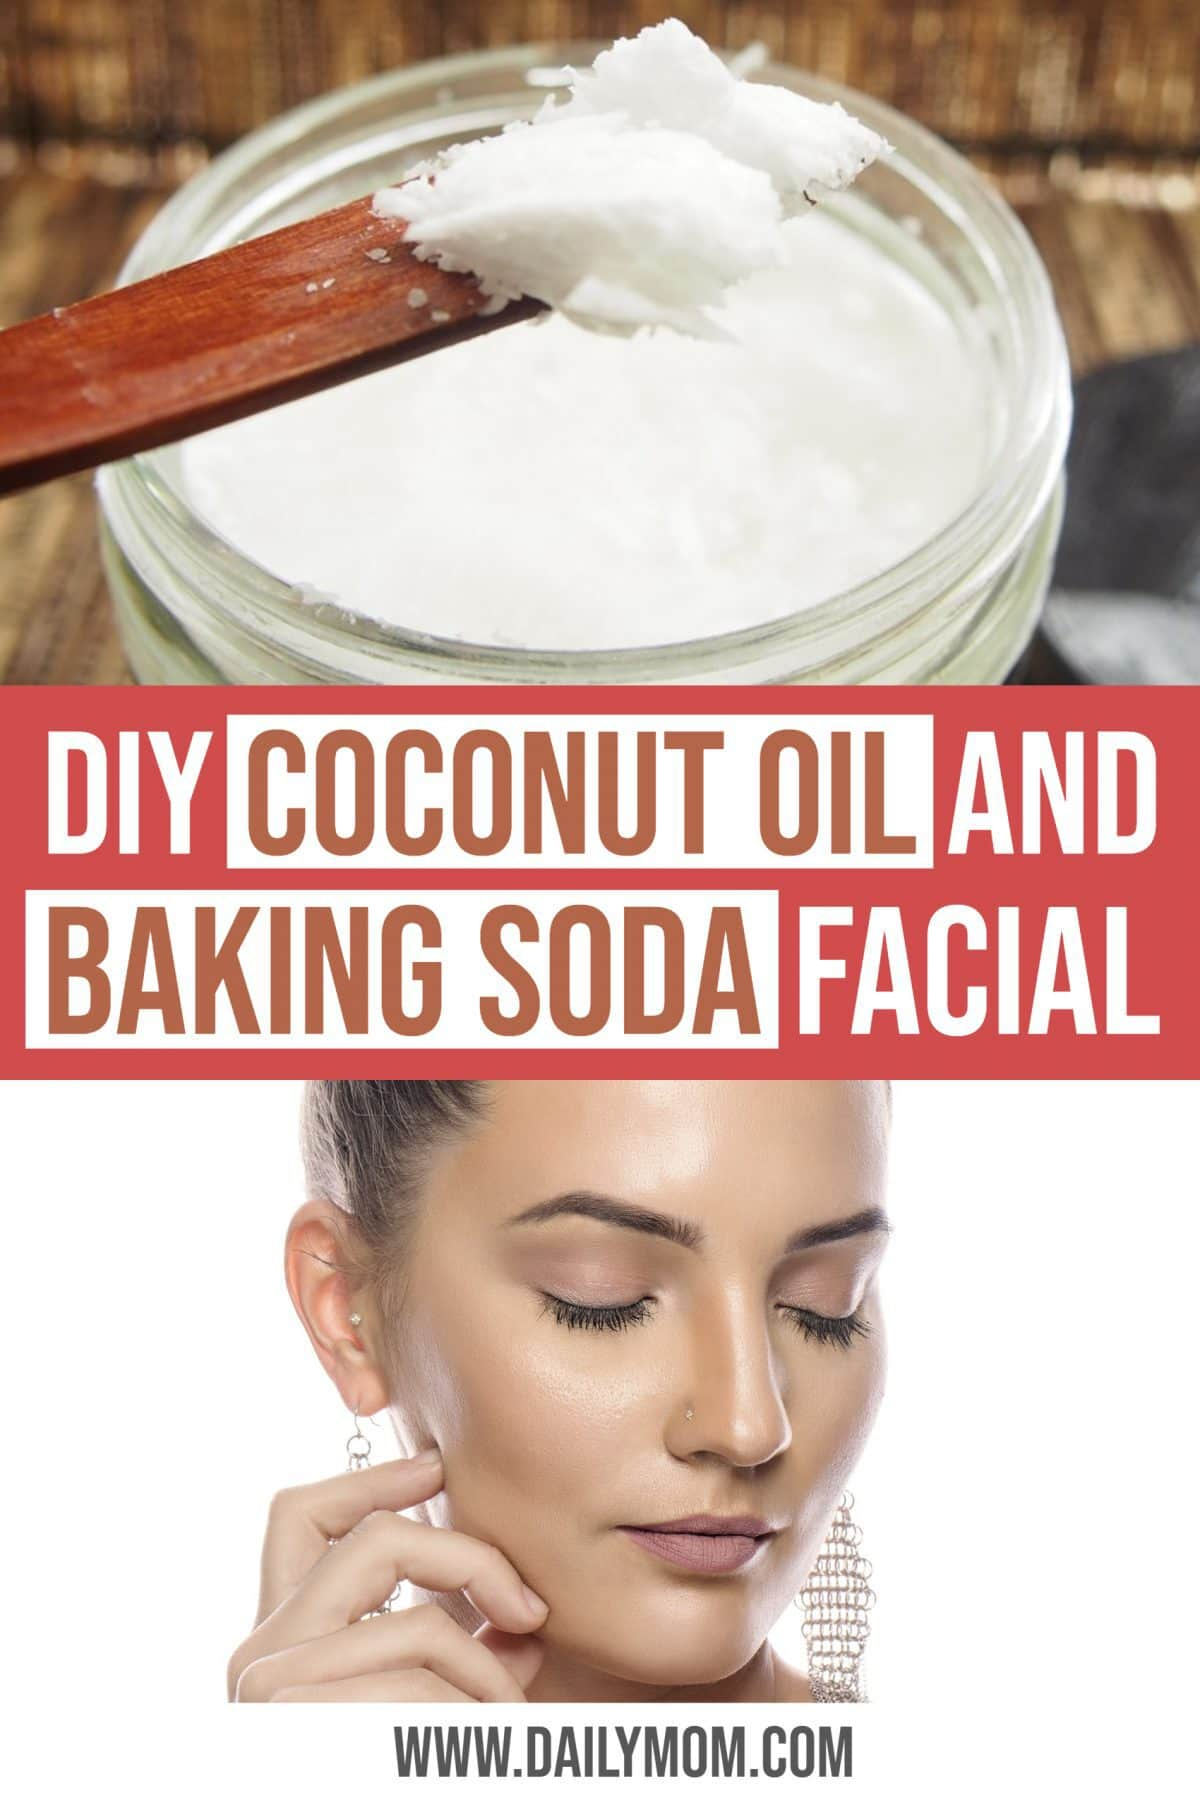 Daily Mom Parent Portal Coconut Oil and Baking Soda Facial